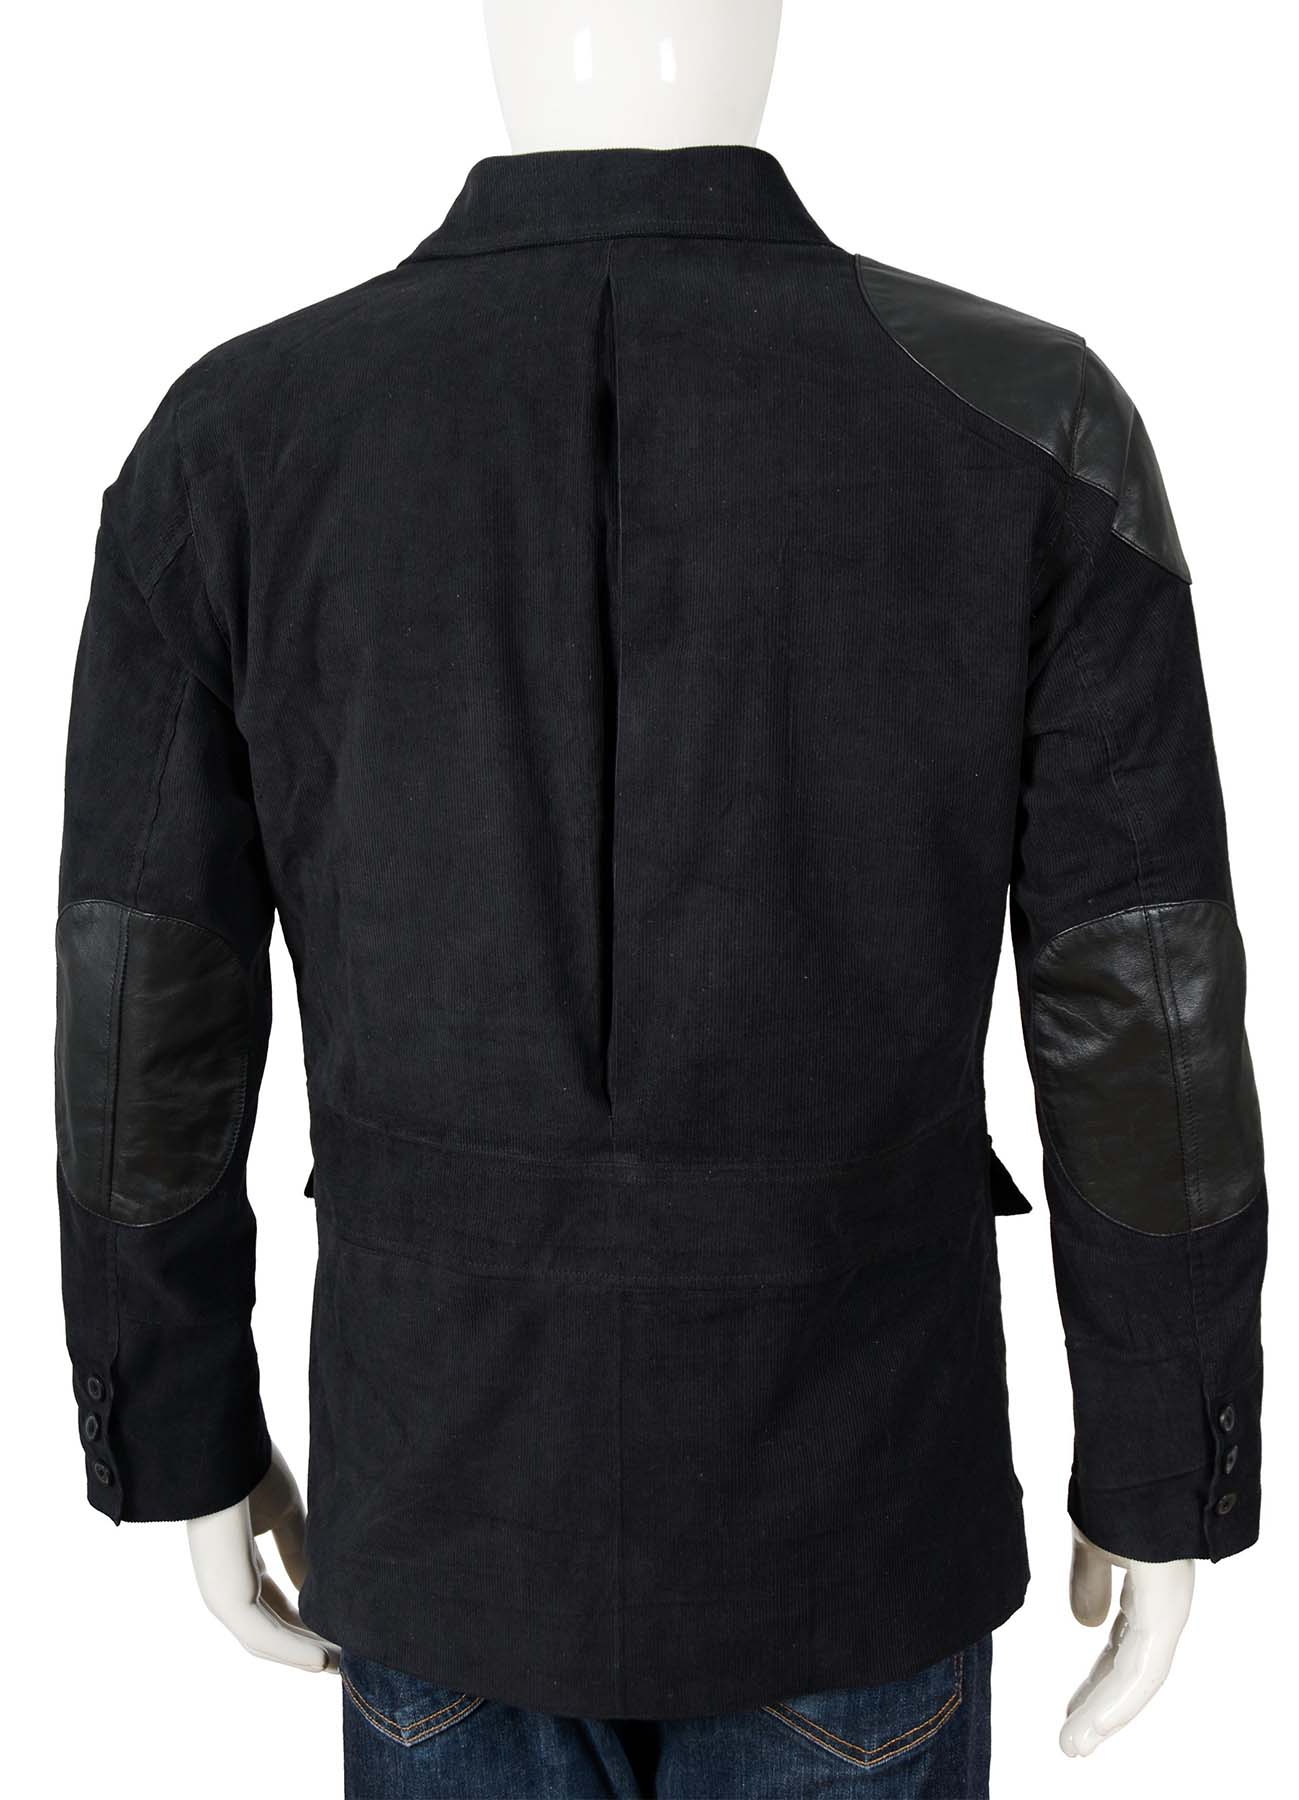 Black Corduroy Jacket With Leather Patch